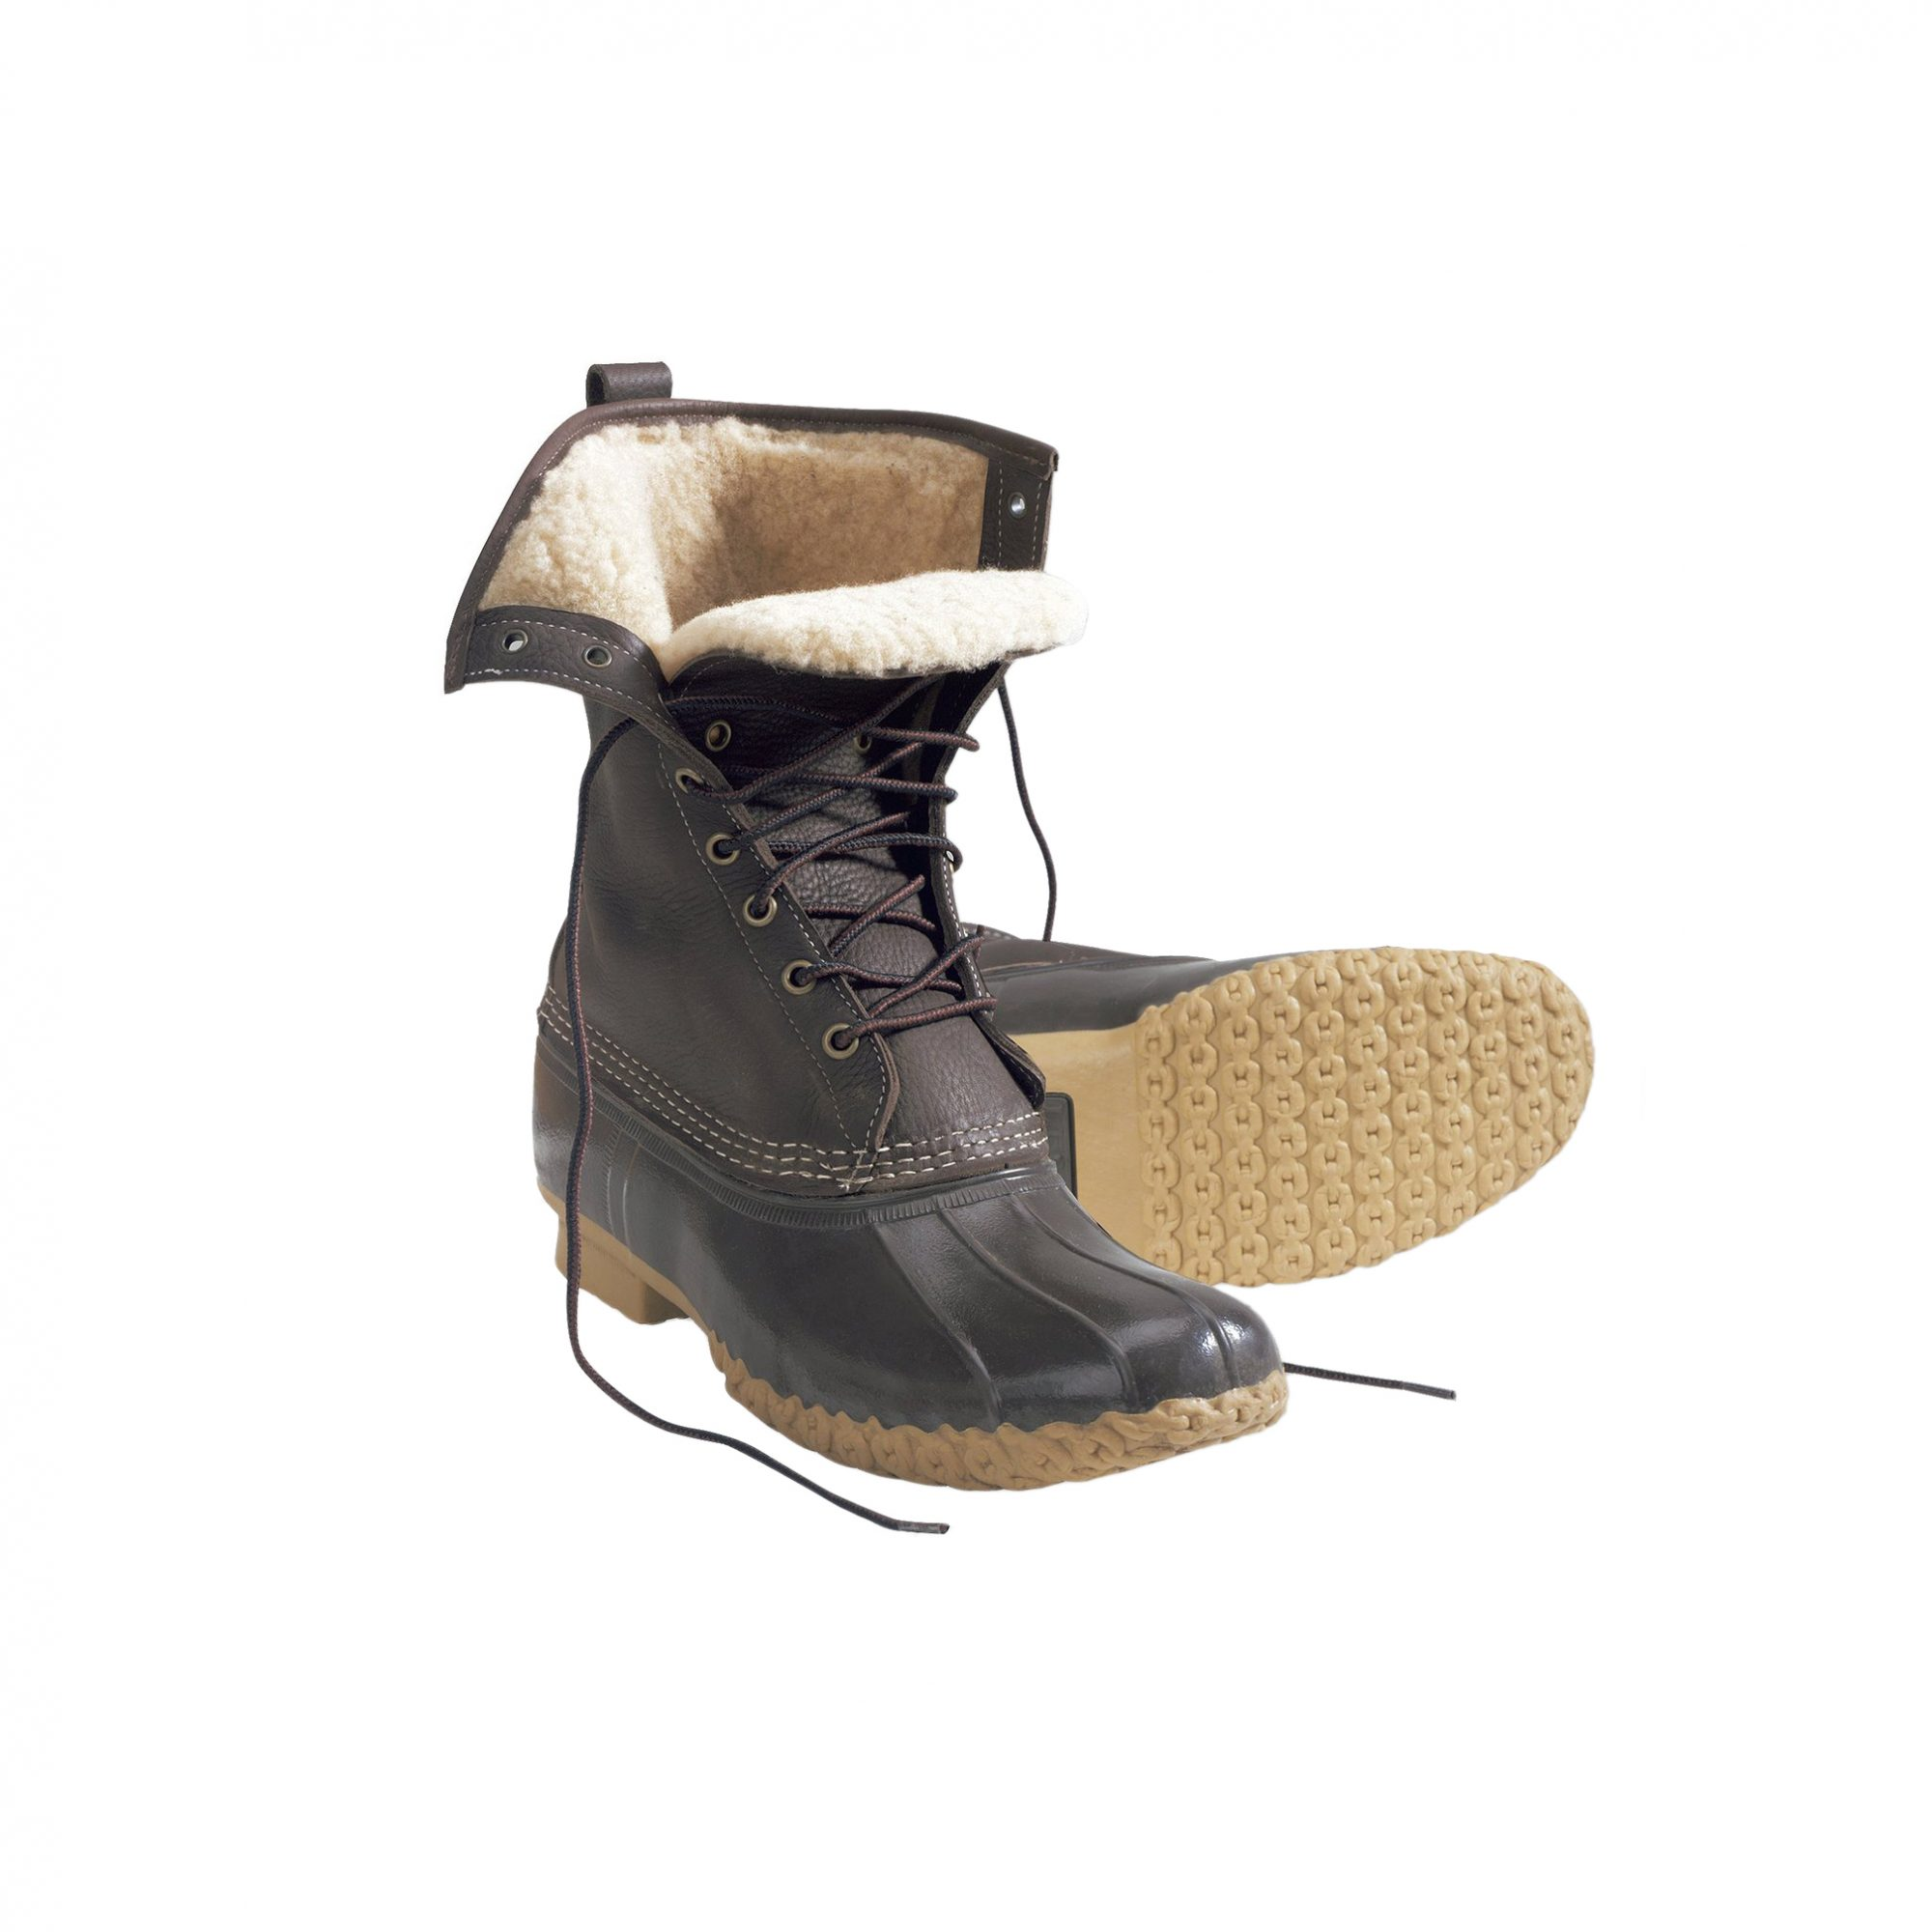 "L.L. Bean 10"" Shearling-Lined Boots"